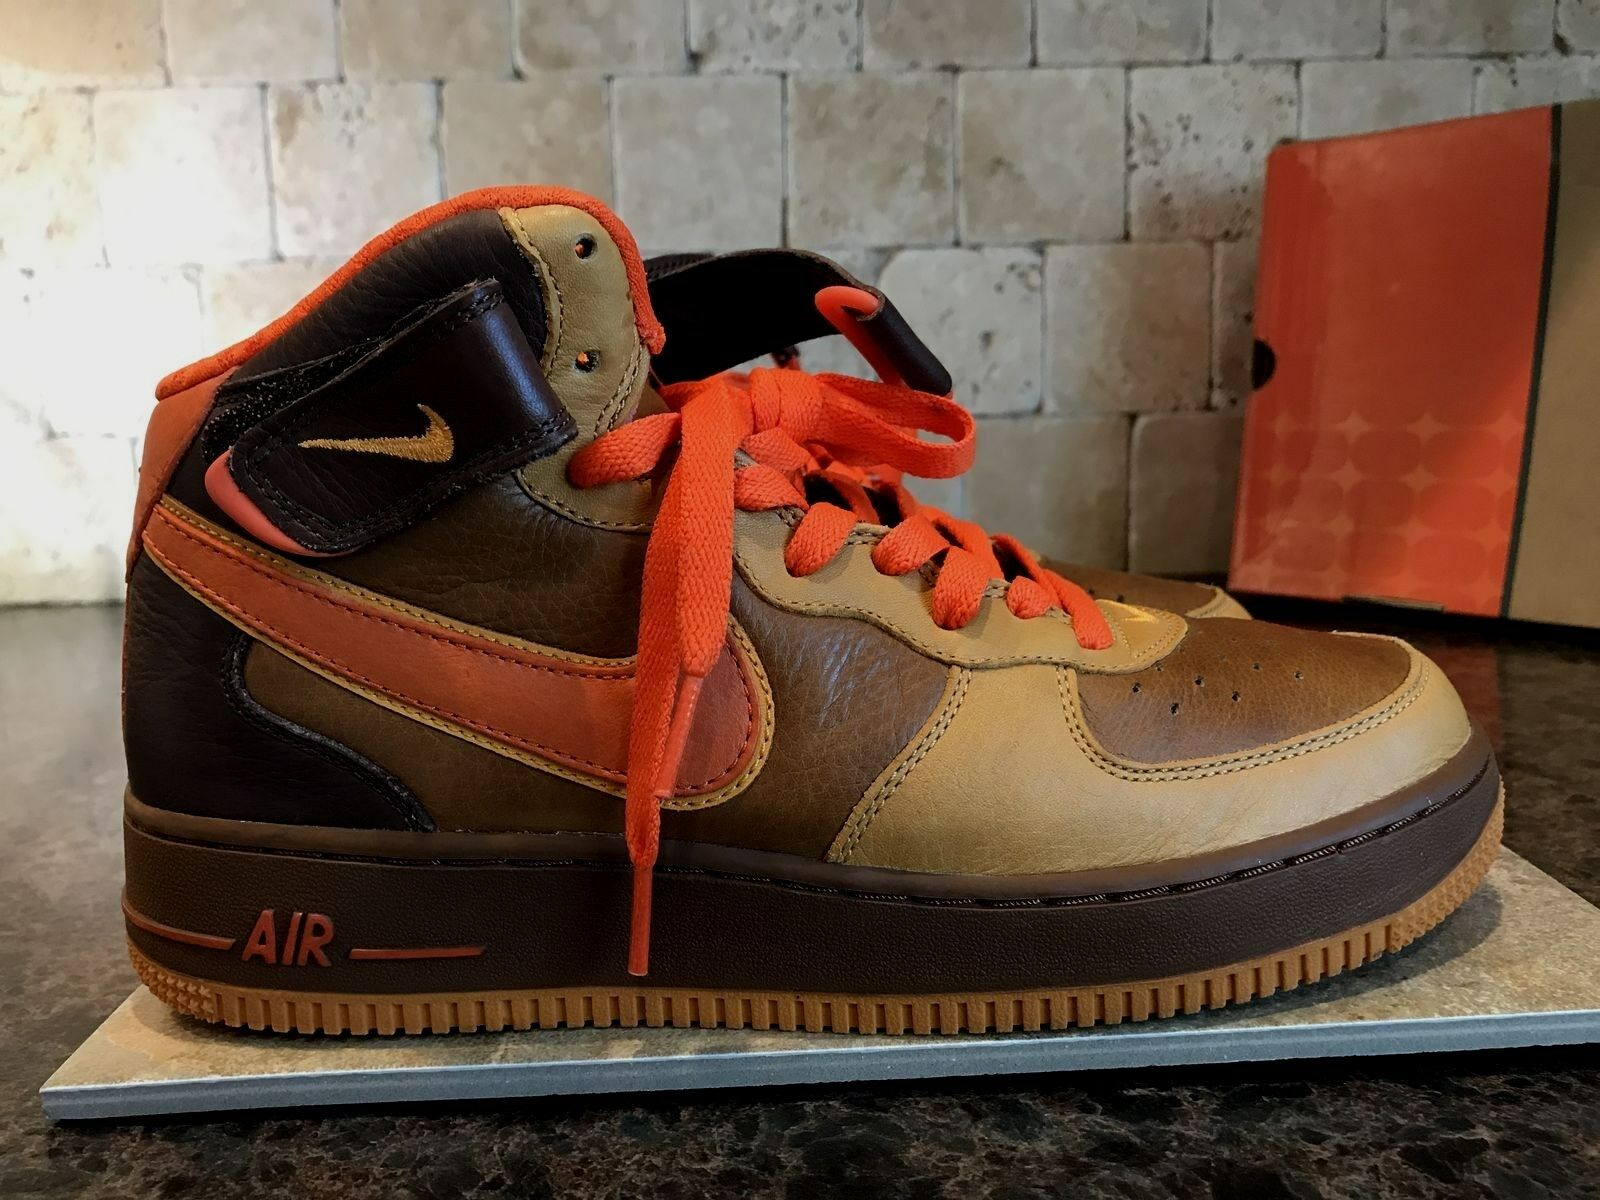 f2ca5bfede1971 NIKE AIR FORCE ONE MID PREMIUM QK SHOES MEN S SZ 8 315581 281 2006  THANKSGIVING